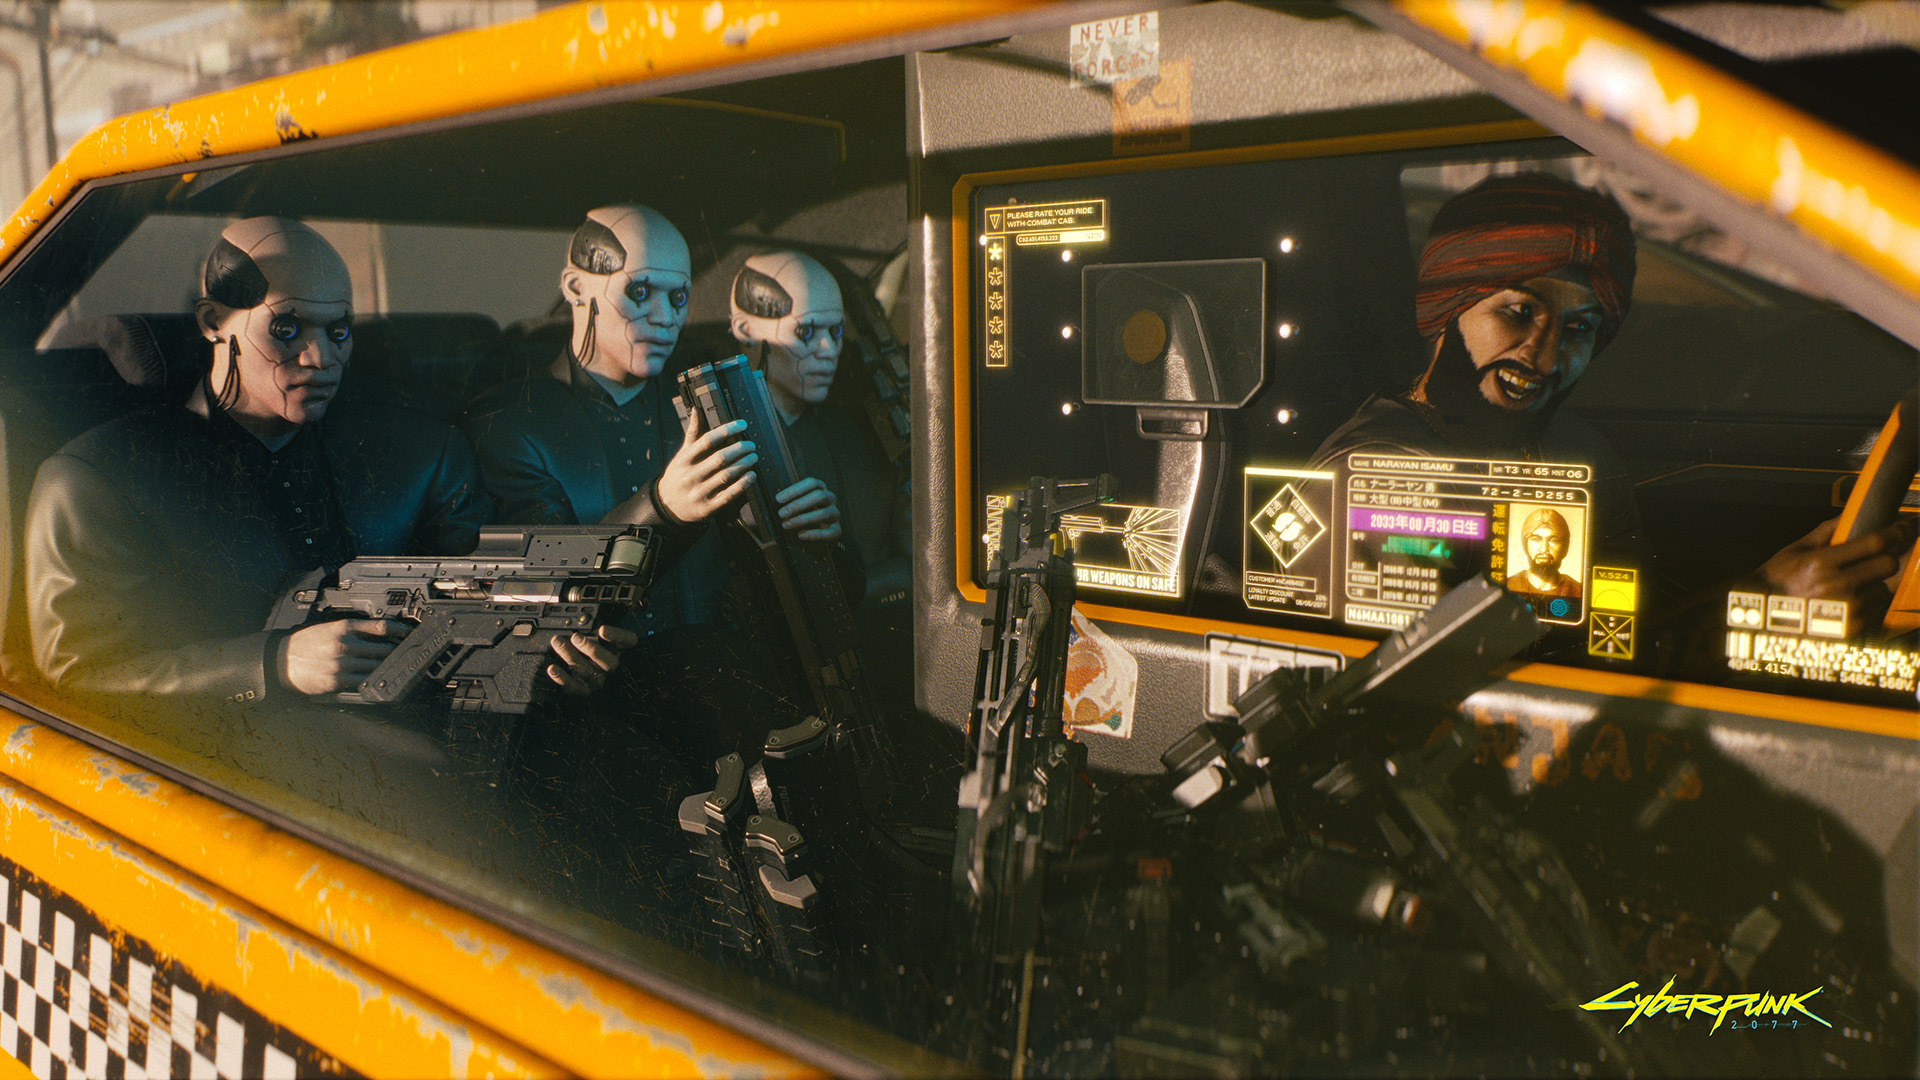 how many acts are there in cyberpunk 2077?